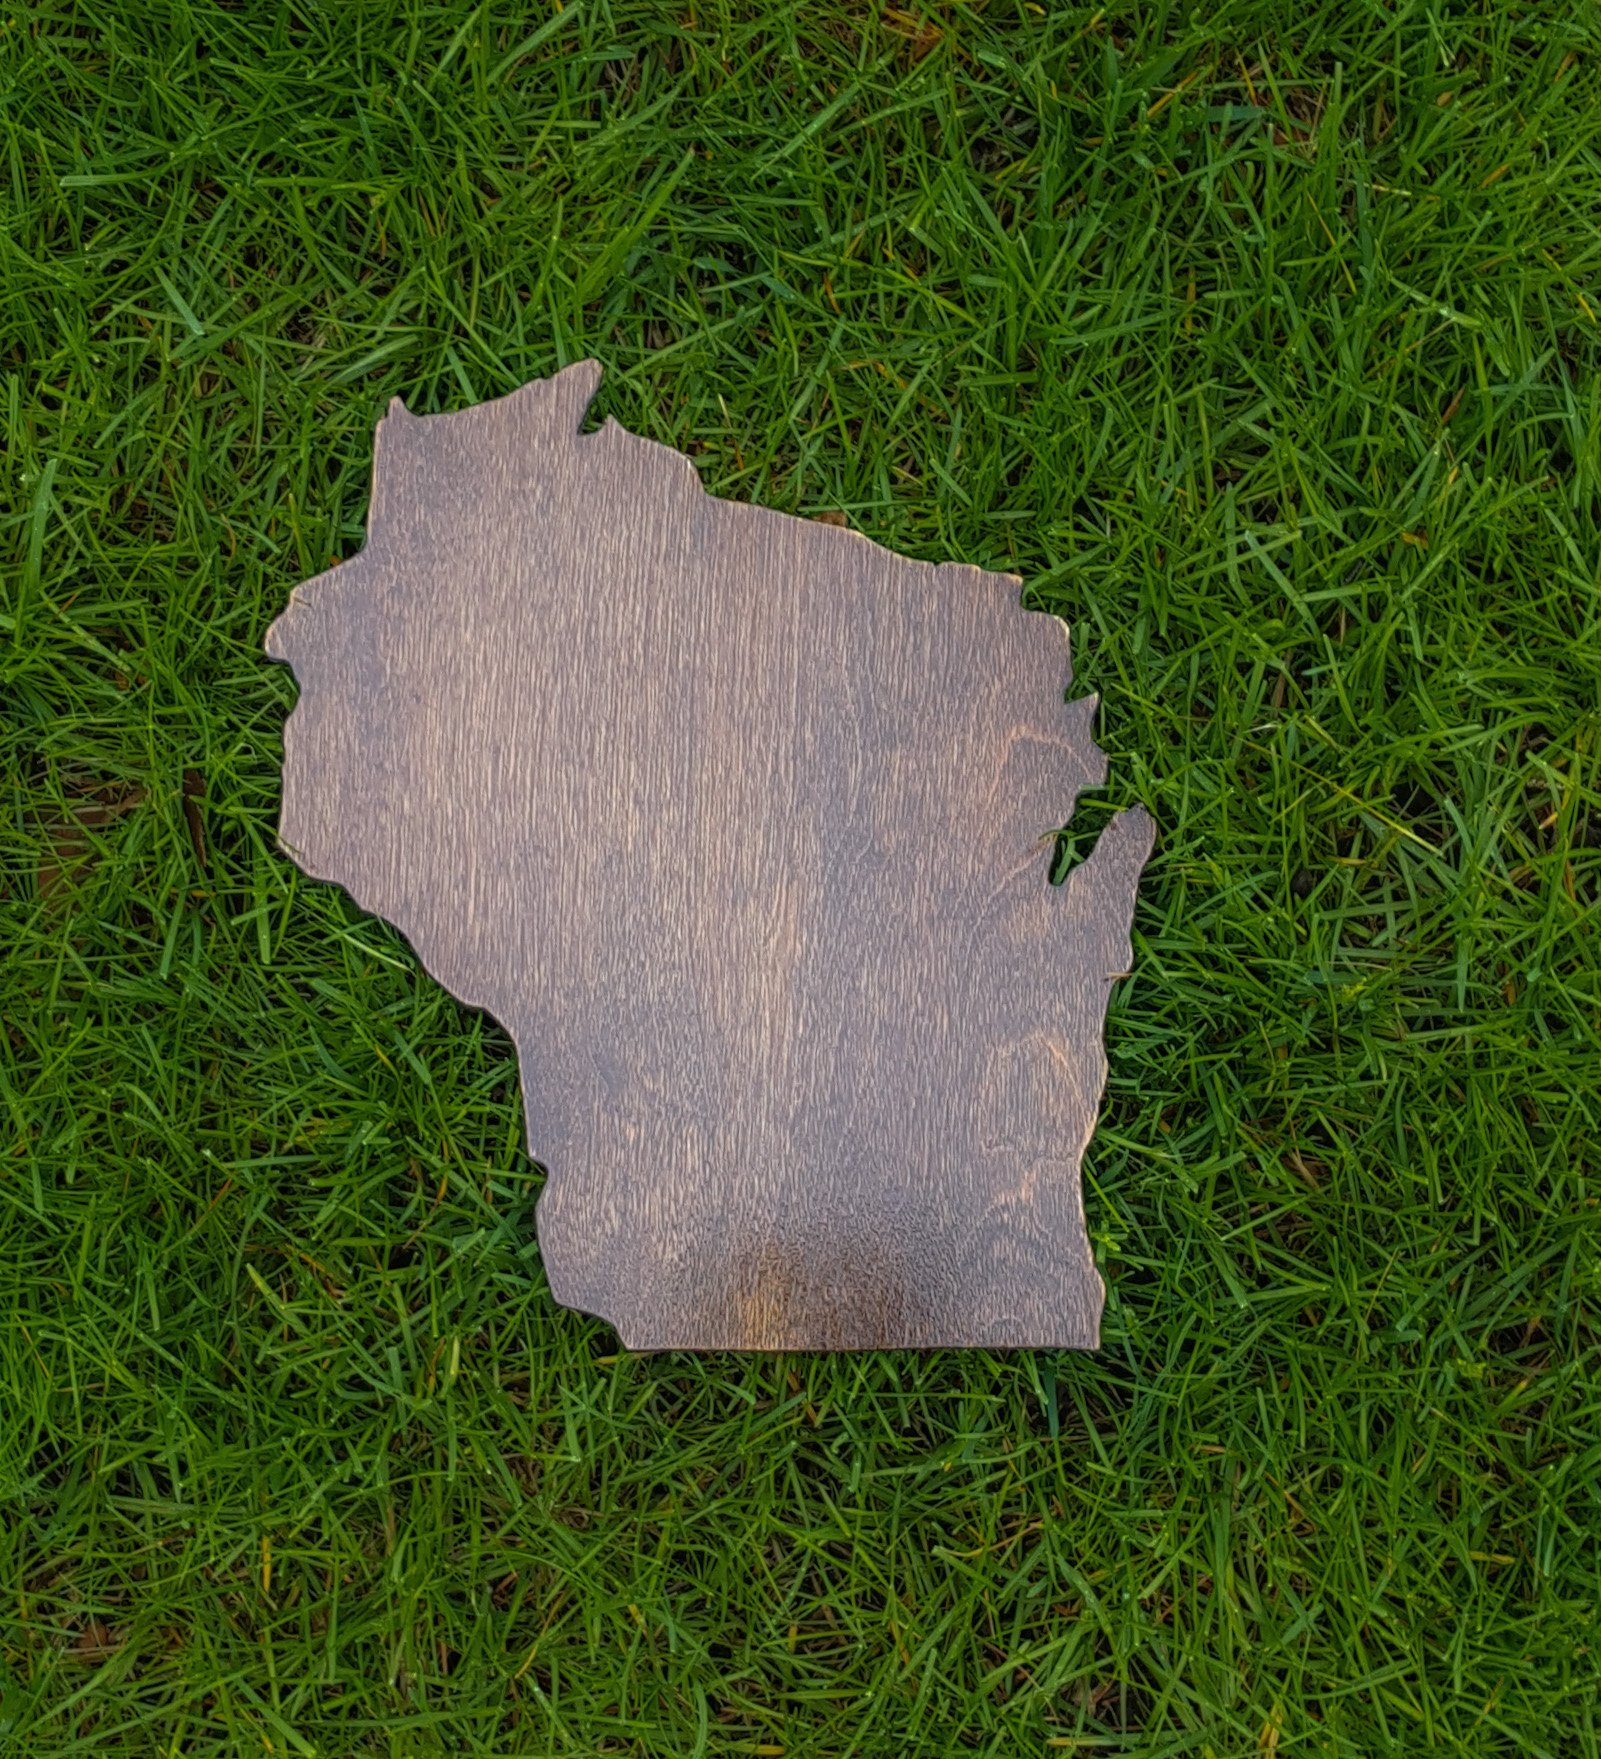 Rustic Wisconsin State Wooden Gallery Wall Art Cutout Office College Dorm Home Bedroom Decor by Natural Accents HD (Image #1)